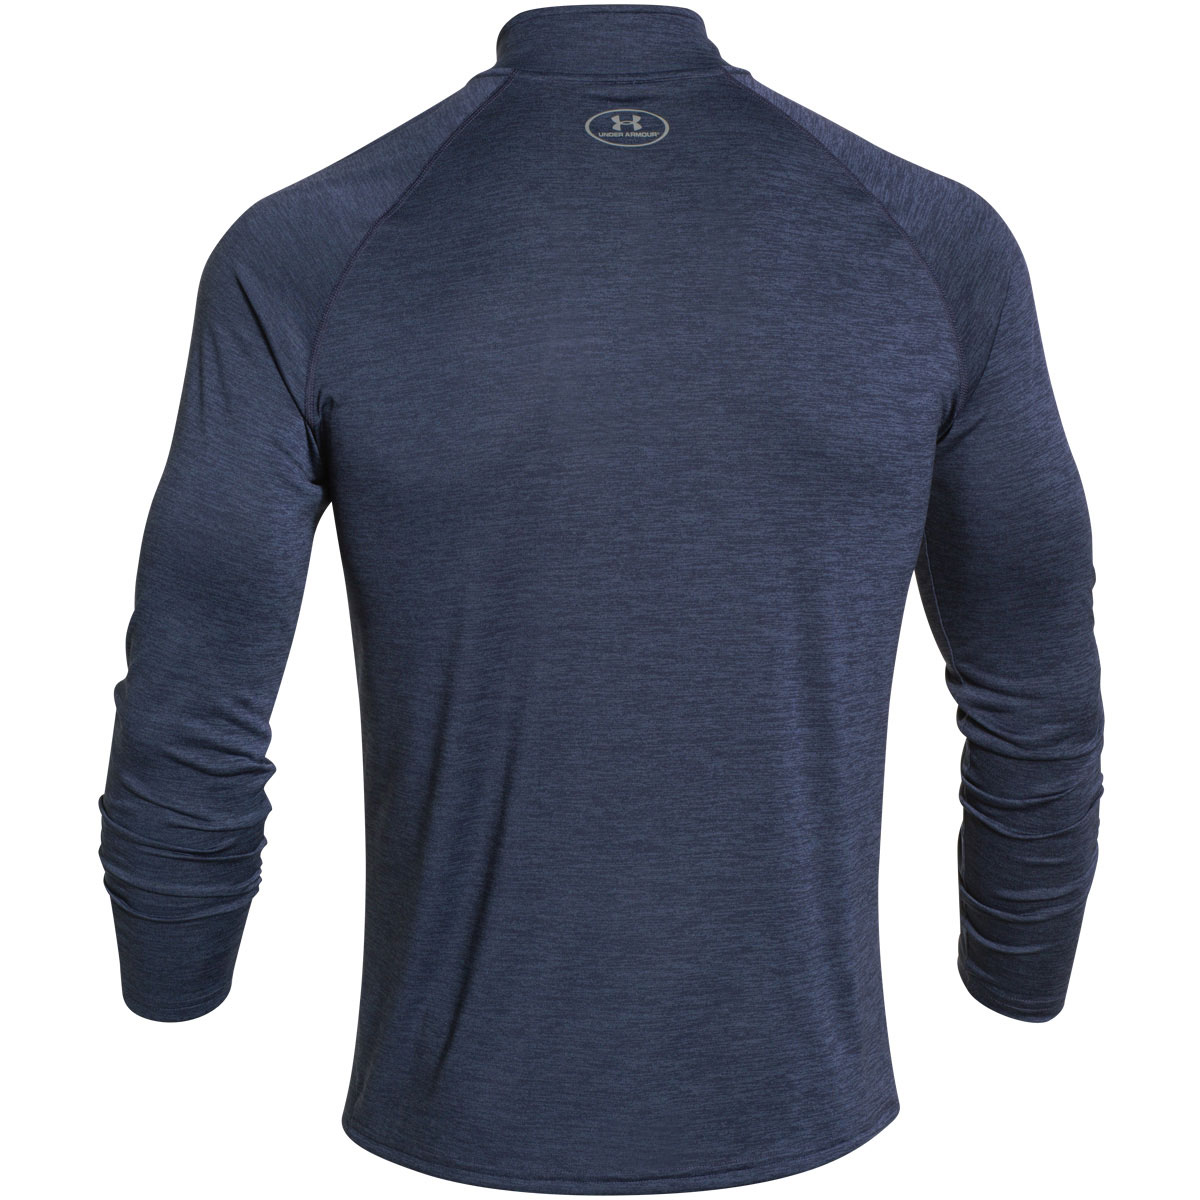 Under-Armour-Mens-UA-Tech-1-4-Zip-Long-Sleeve-Top-Workout-Layer-27-OFF-RRP thumbnail 59